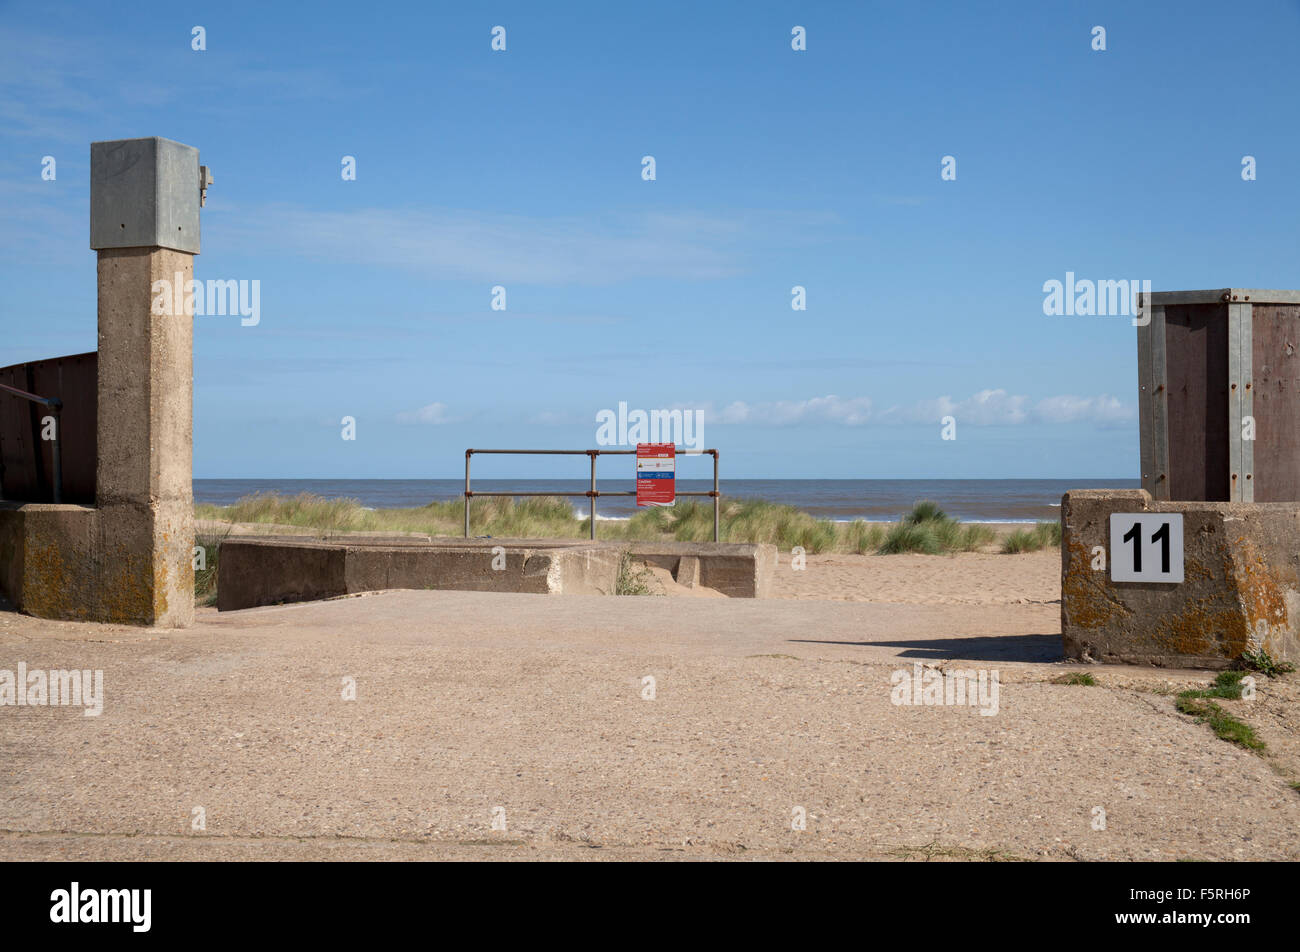 Sea defence gate at Sutton on Sea, Lincolnshire, England UK - Stock Image